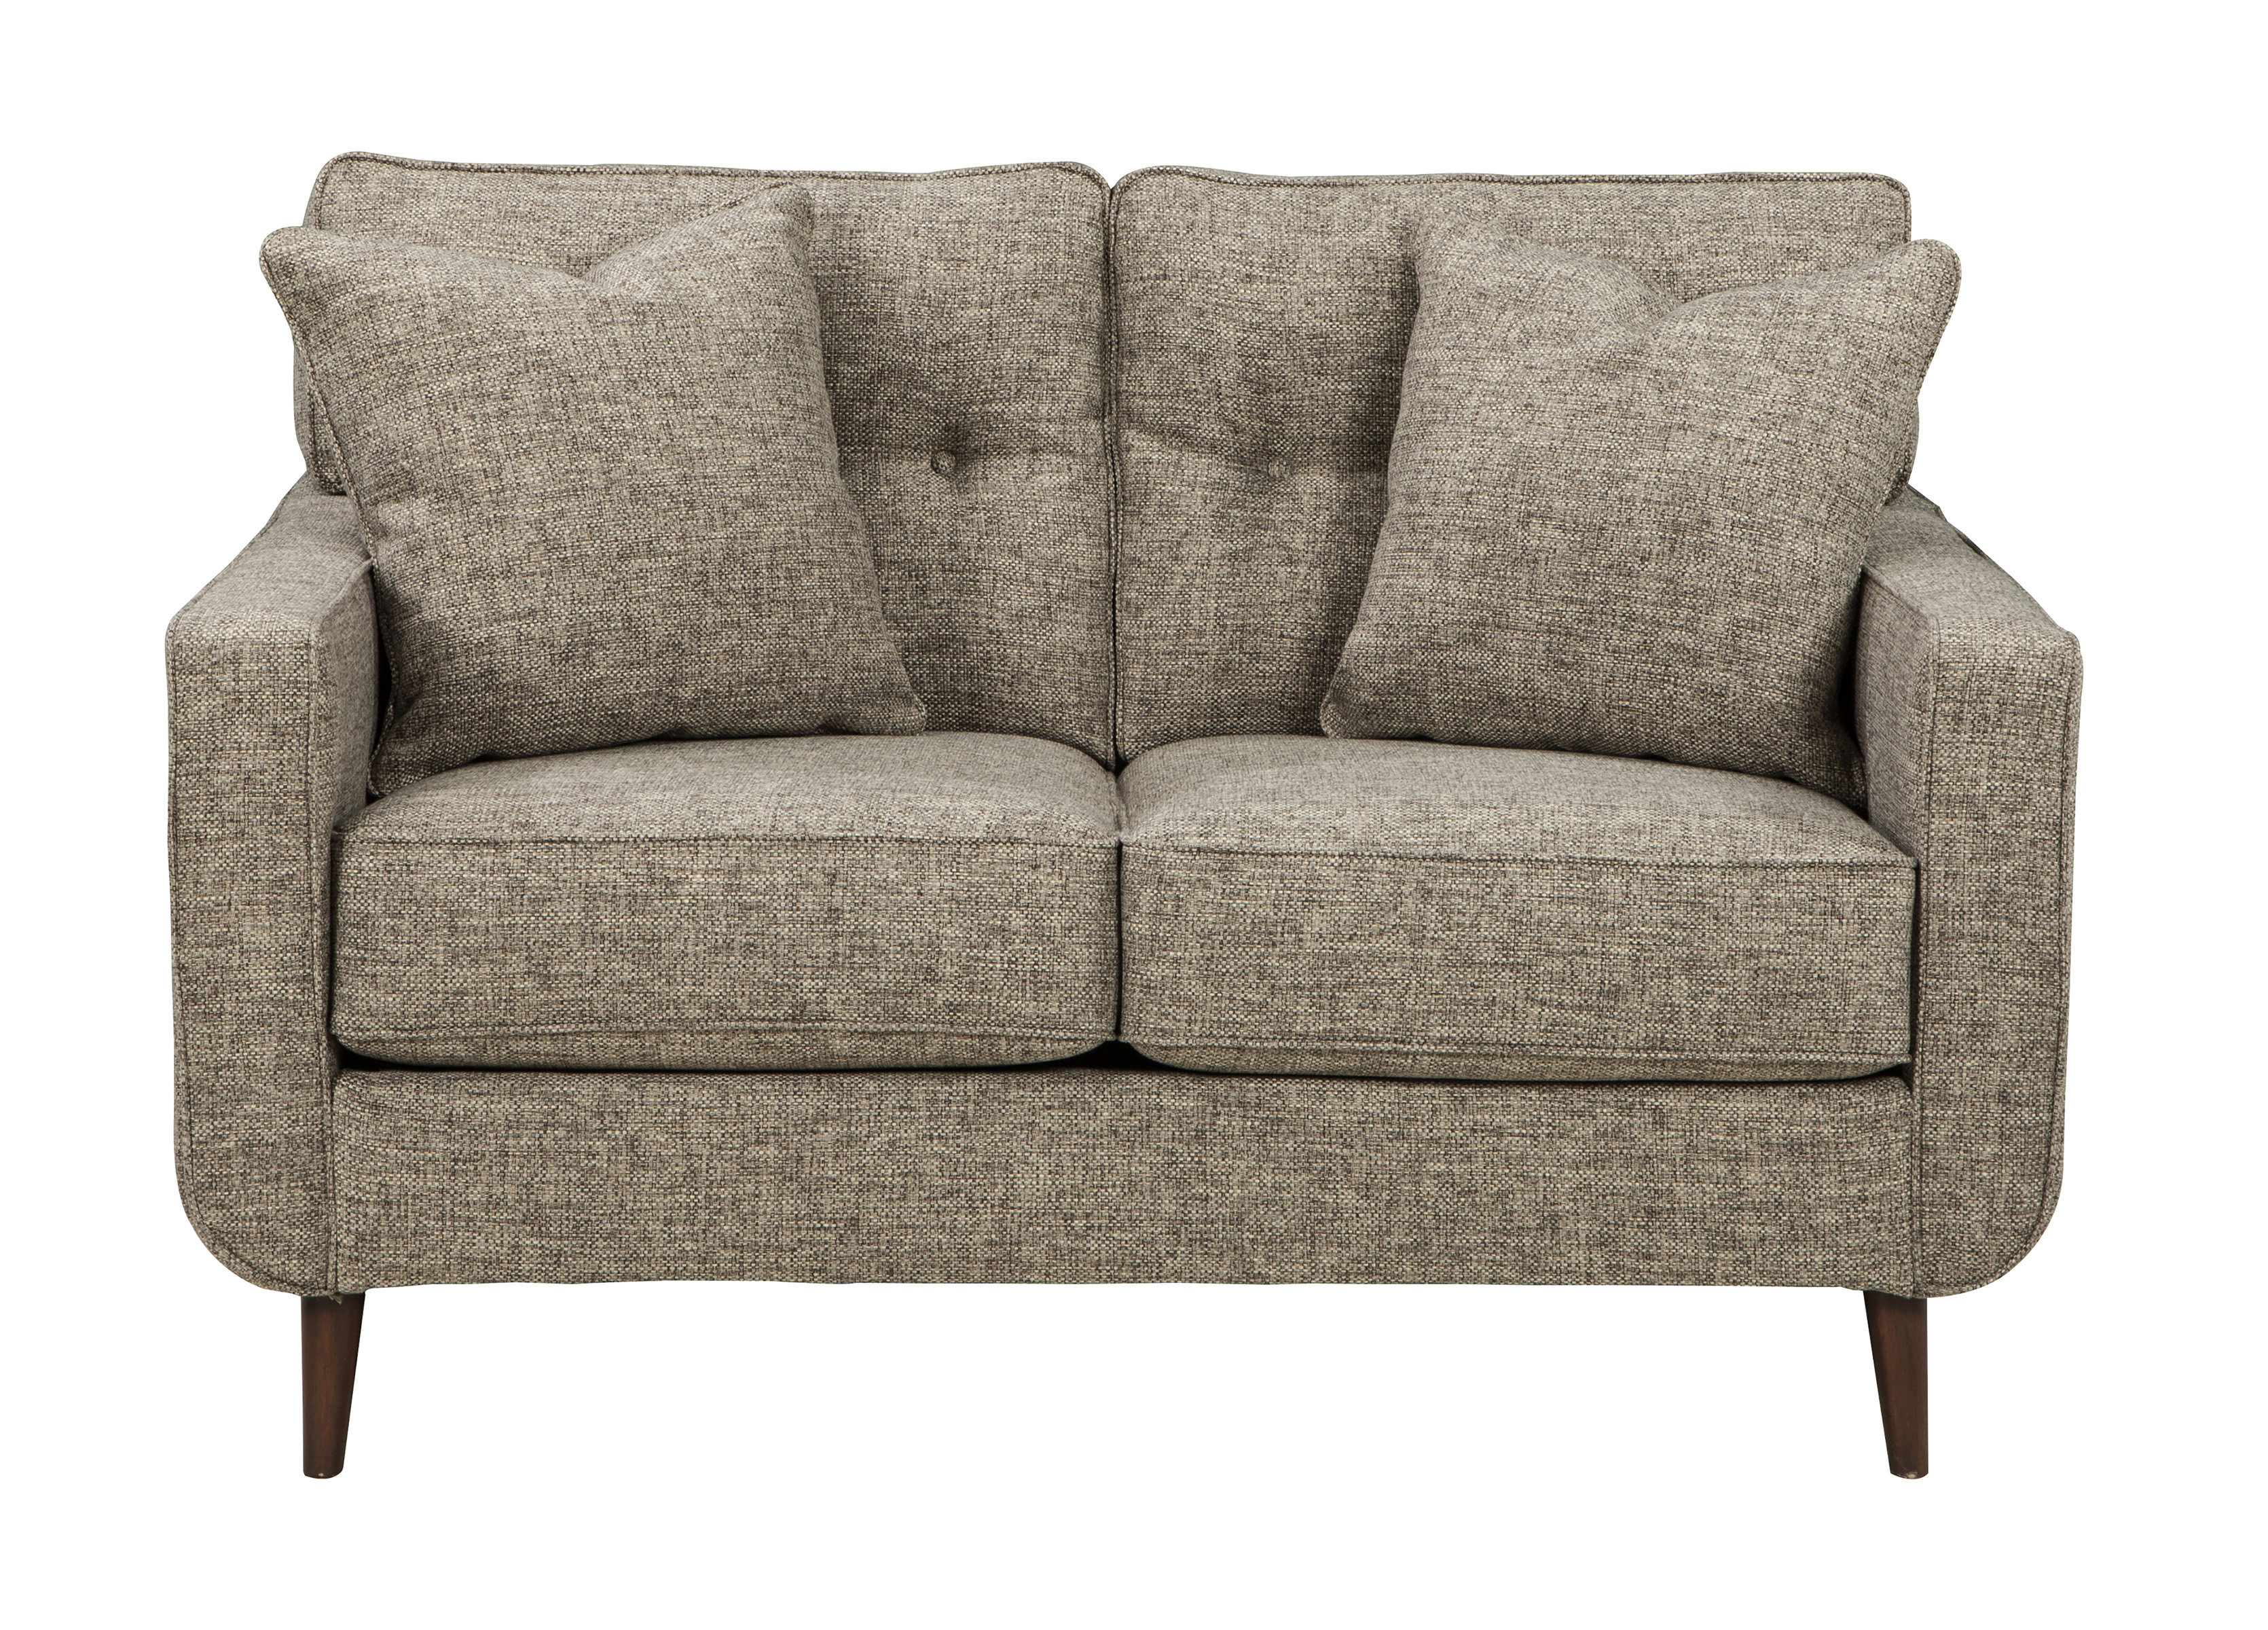 Grandin Loveseat | Allmodern regarding Grandin Leather Sofa Chairs